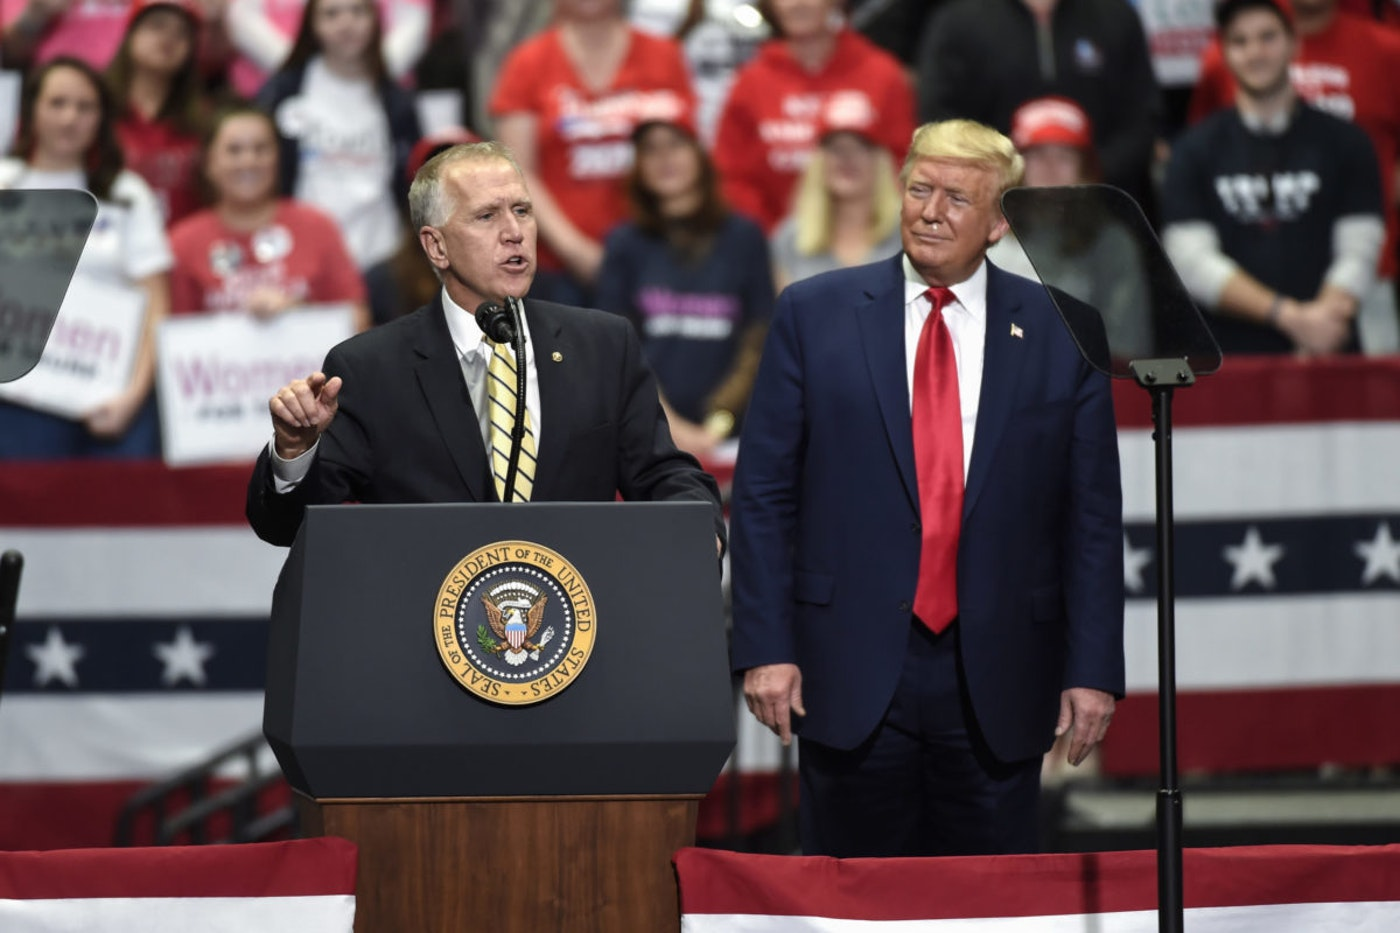 In this March 2, 2020, file photo Sen. Thom Tillis, R-N.C., speaks during a campaign rally for President Donald Trump in Charlotte, N.C. Tillis, facing a competitive North Carolina reelection contest, will likely be challenged in Tuesday's debate with Cal Cunningham on his support for filling a US Supreme Court seat in an election year. (AP Photo/Mike McCarn, File)